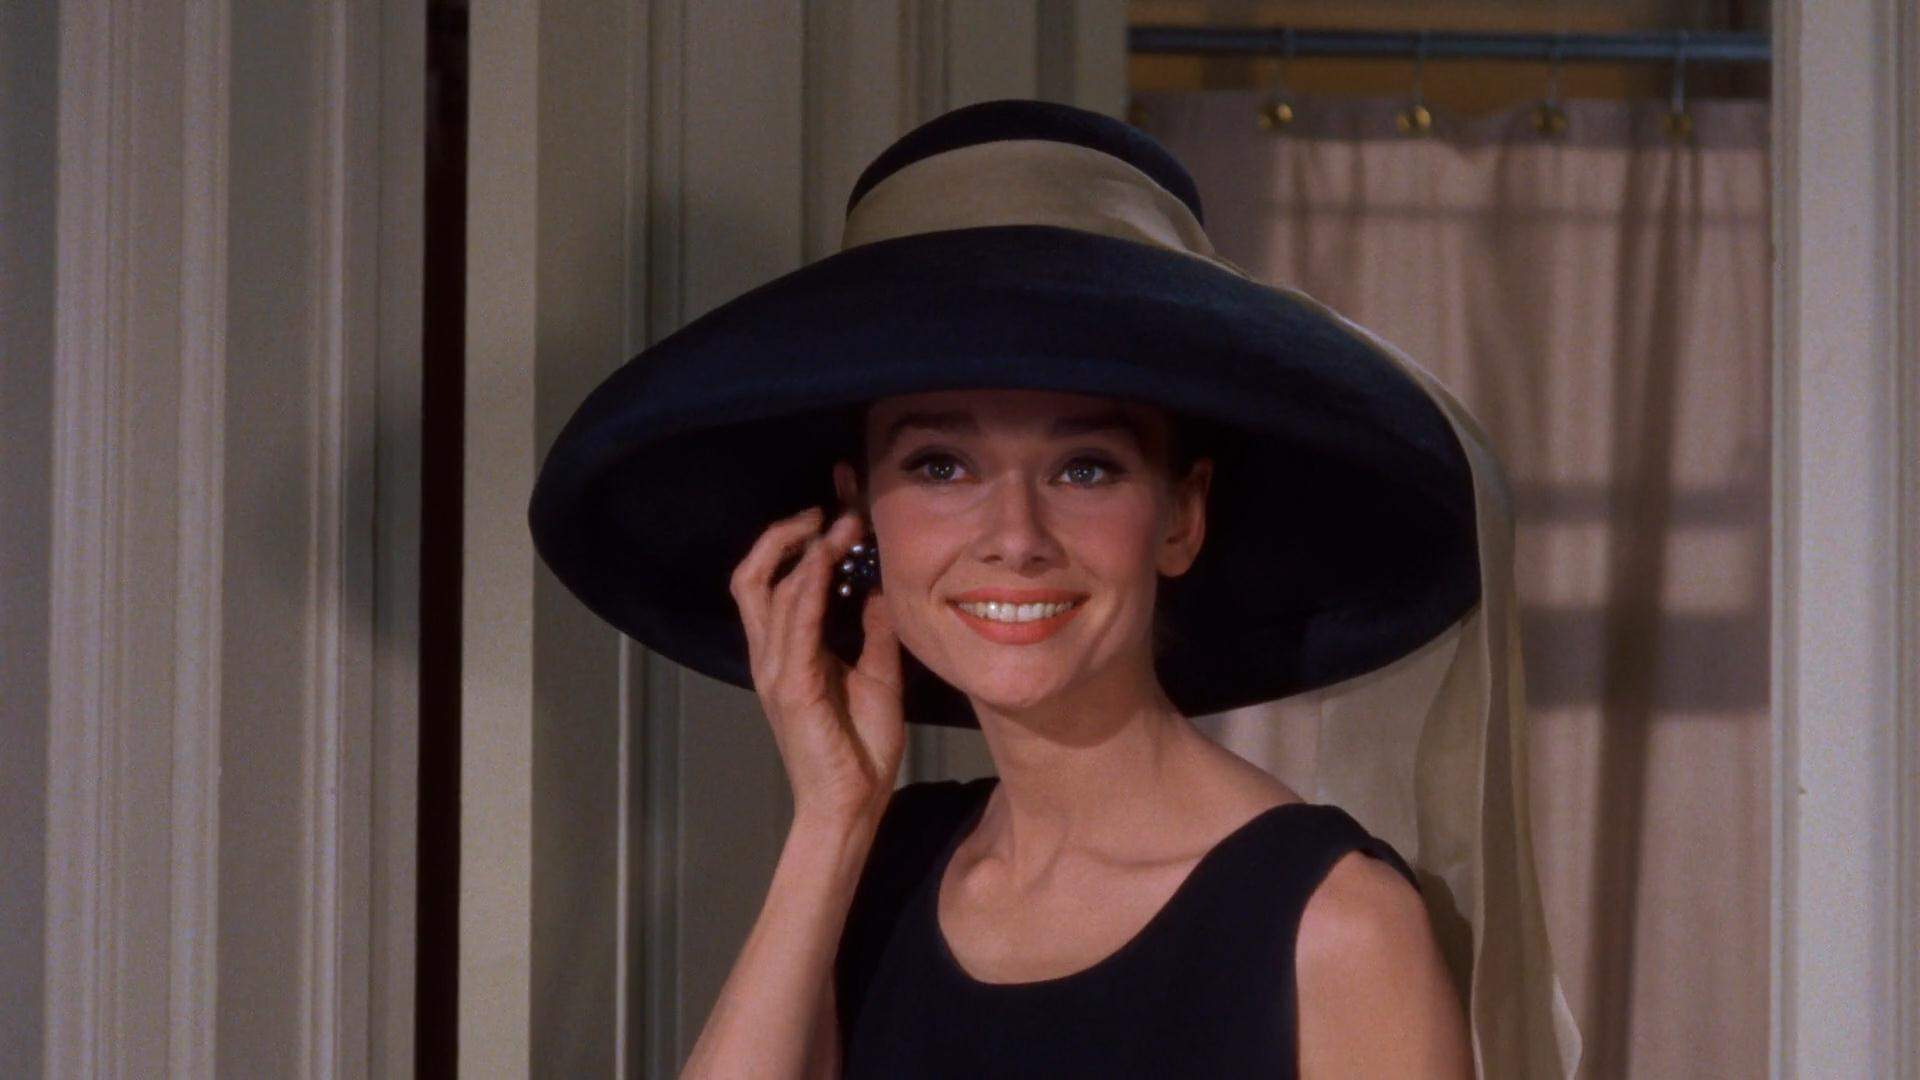 Christie's Audrey Hepburn auction: how to buy the star's personal collection